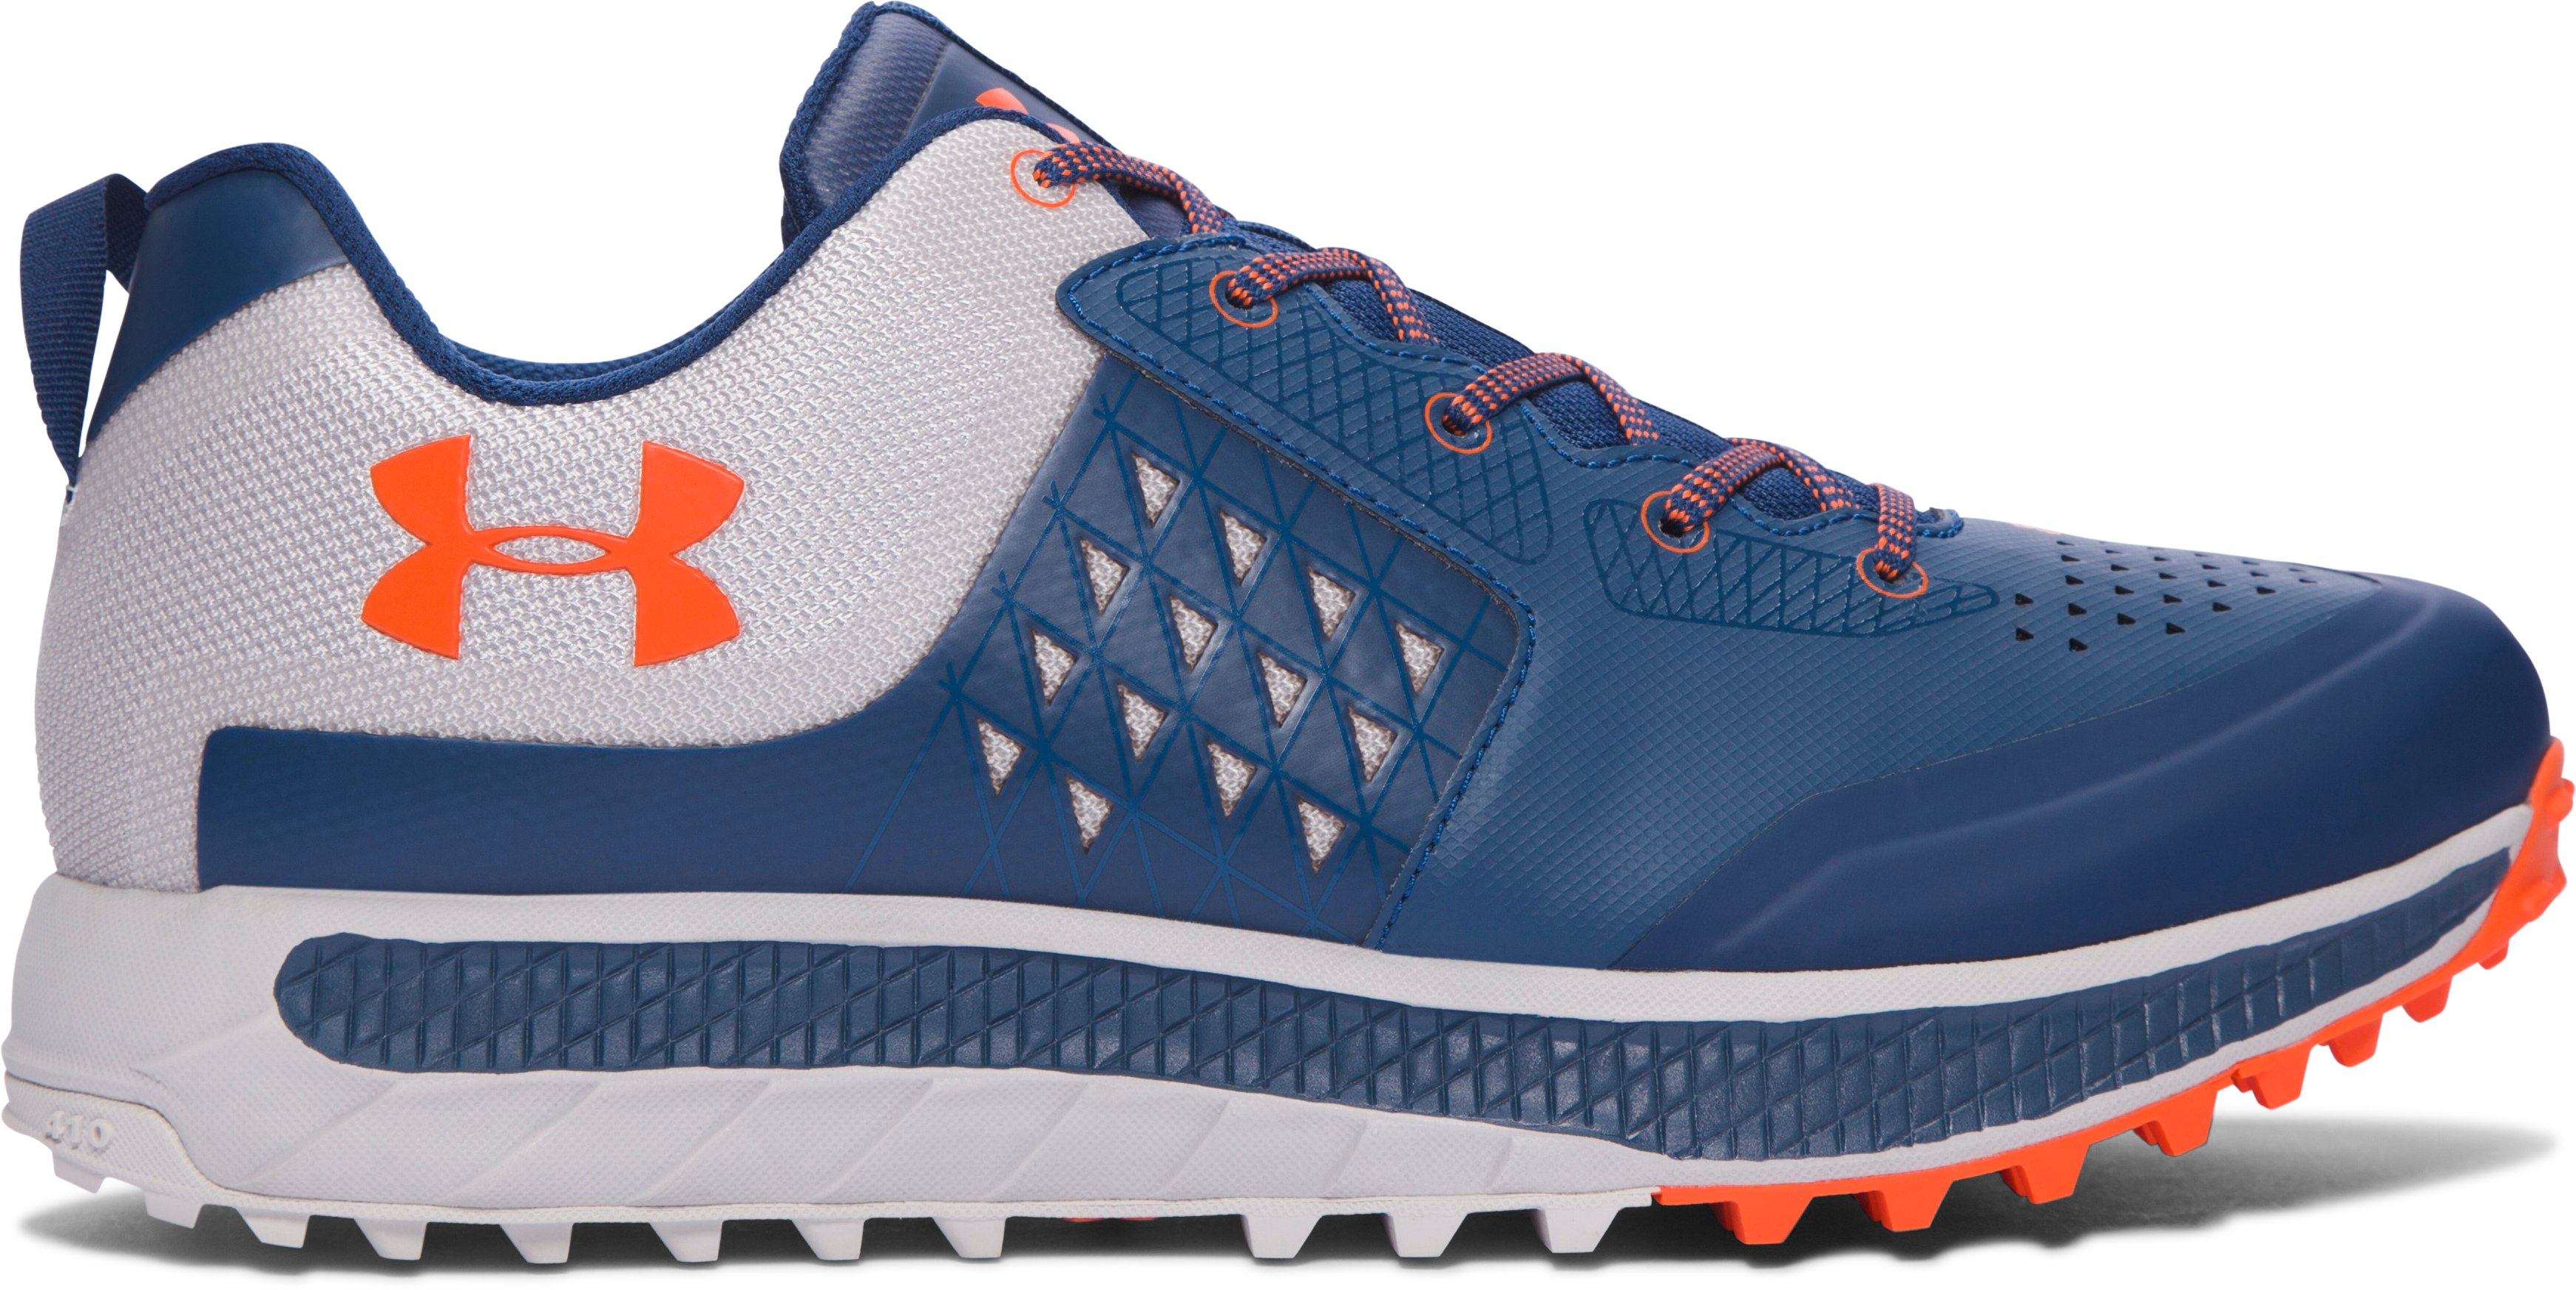 Zapatilla de Trail Running UA Horizon STR para Hombre, 360 degree view